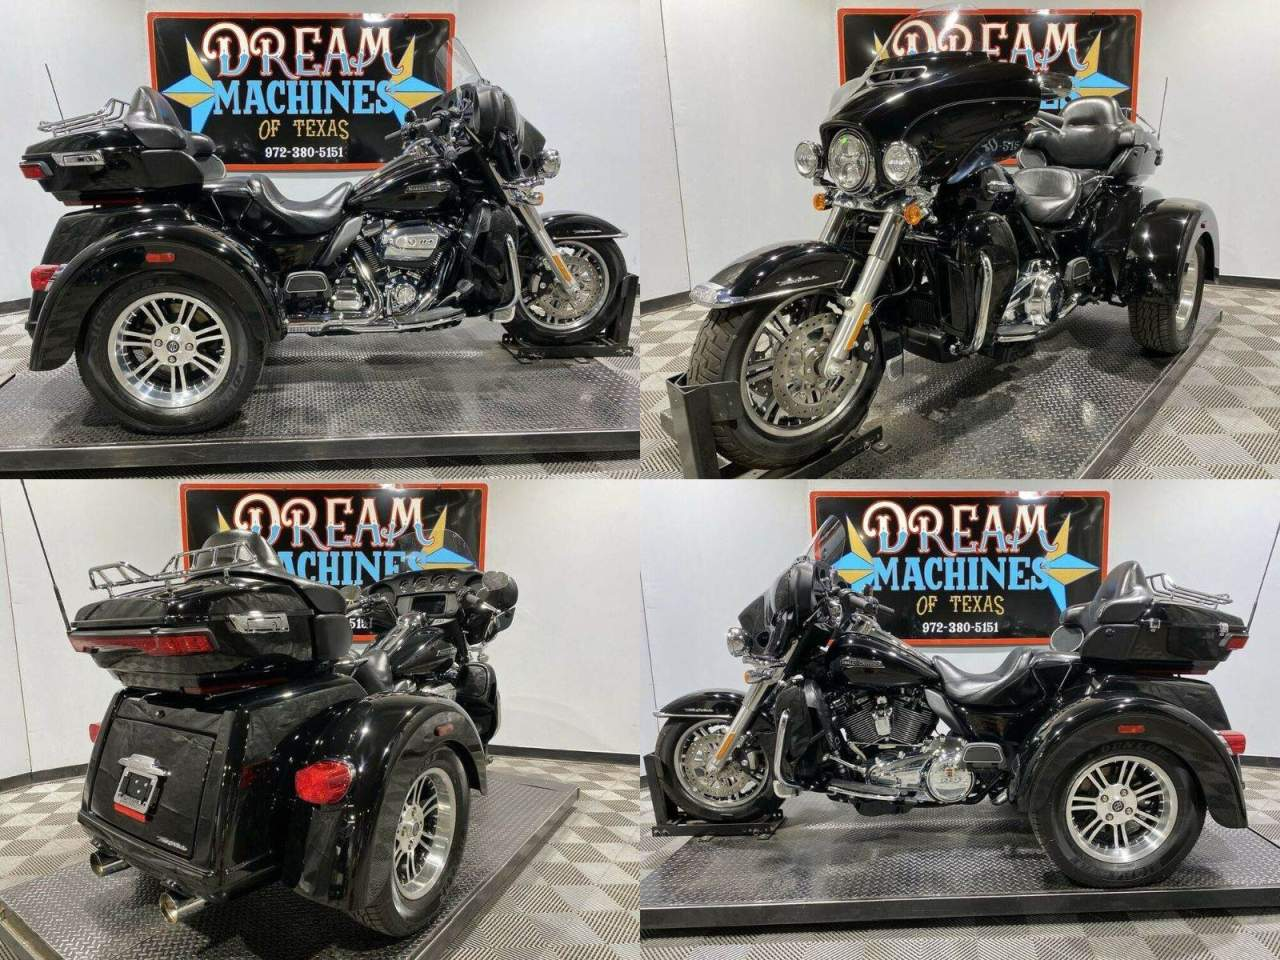 2020 Harley-Davidson FLHTCUTG - Tri Glide Ultra Classic Trike Black used for sale near me